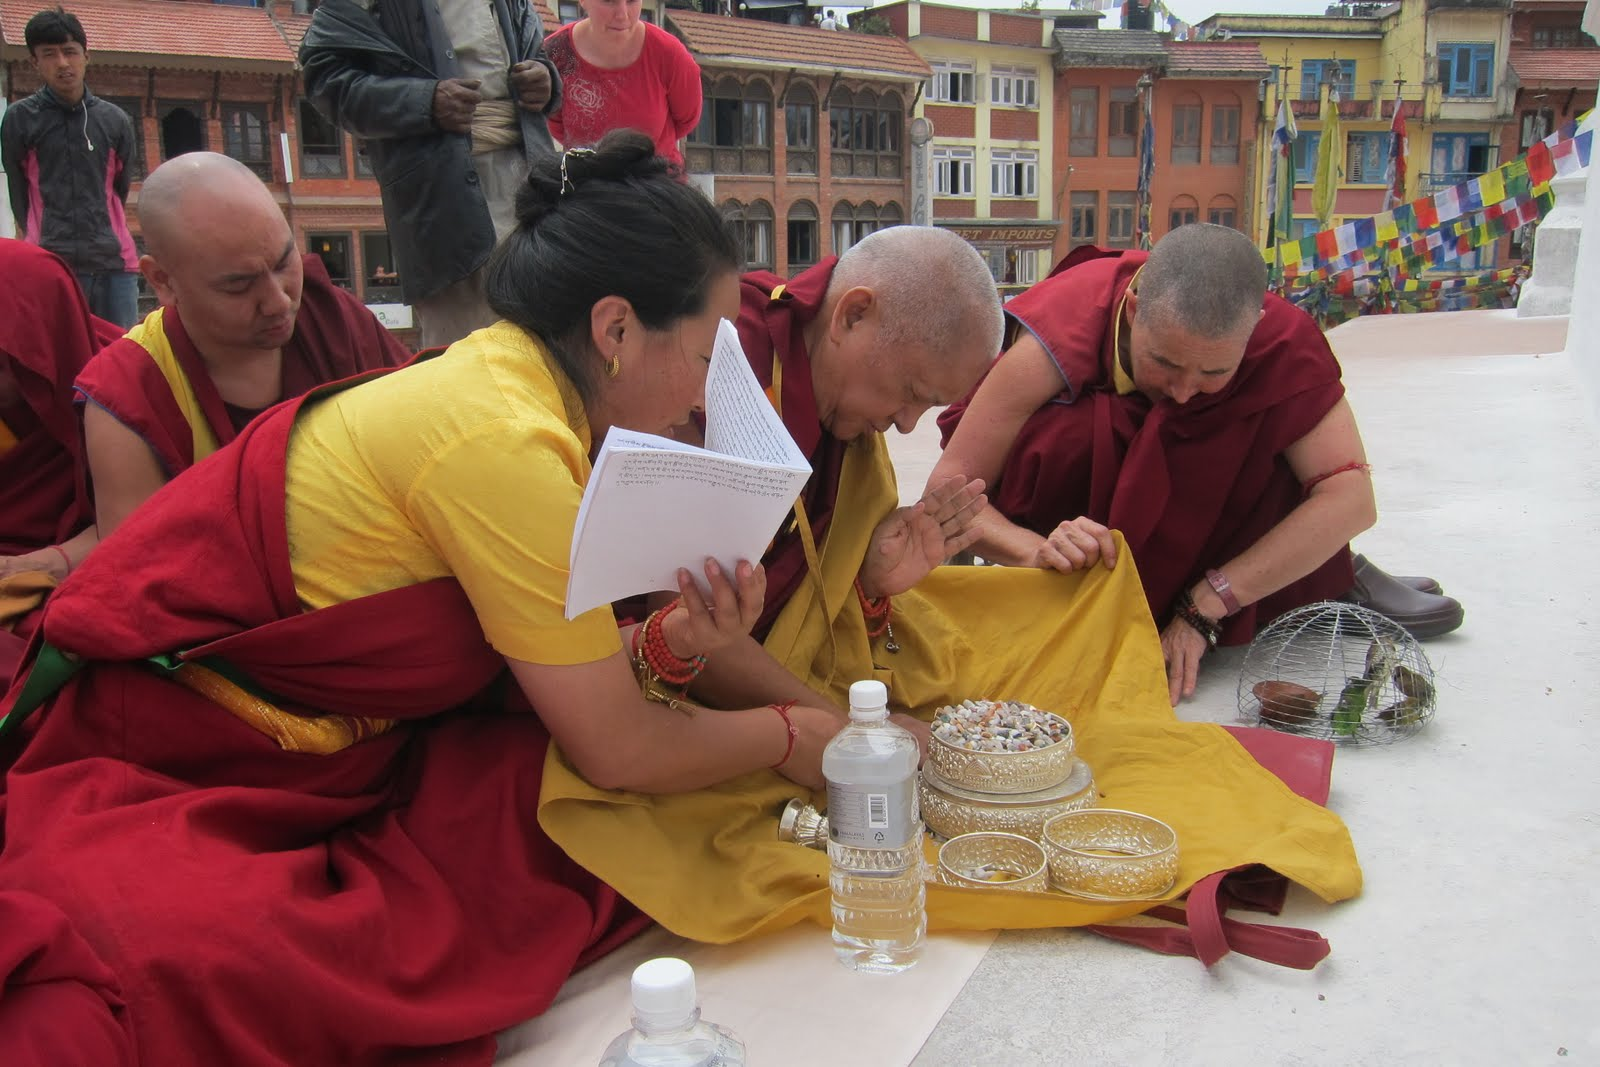 Rinpoche and Khadro-la offering mandala at Bouddha Stupa. With Ani. Jan. Photo by Ven.Sarah Thresher. April 18, 2013